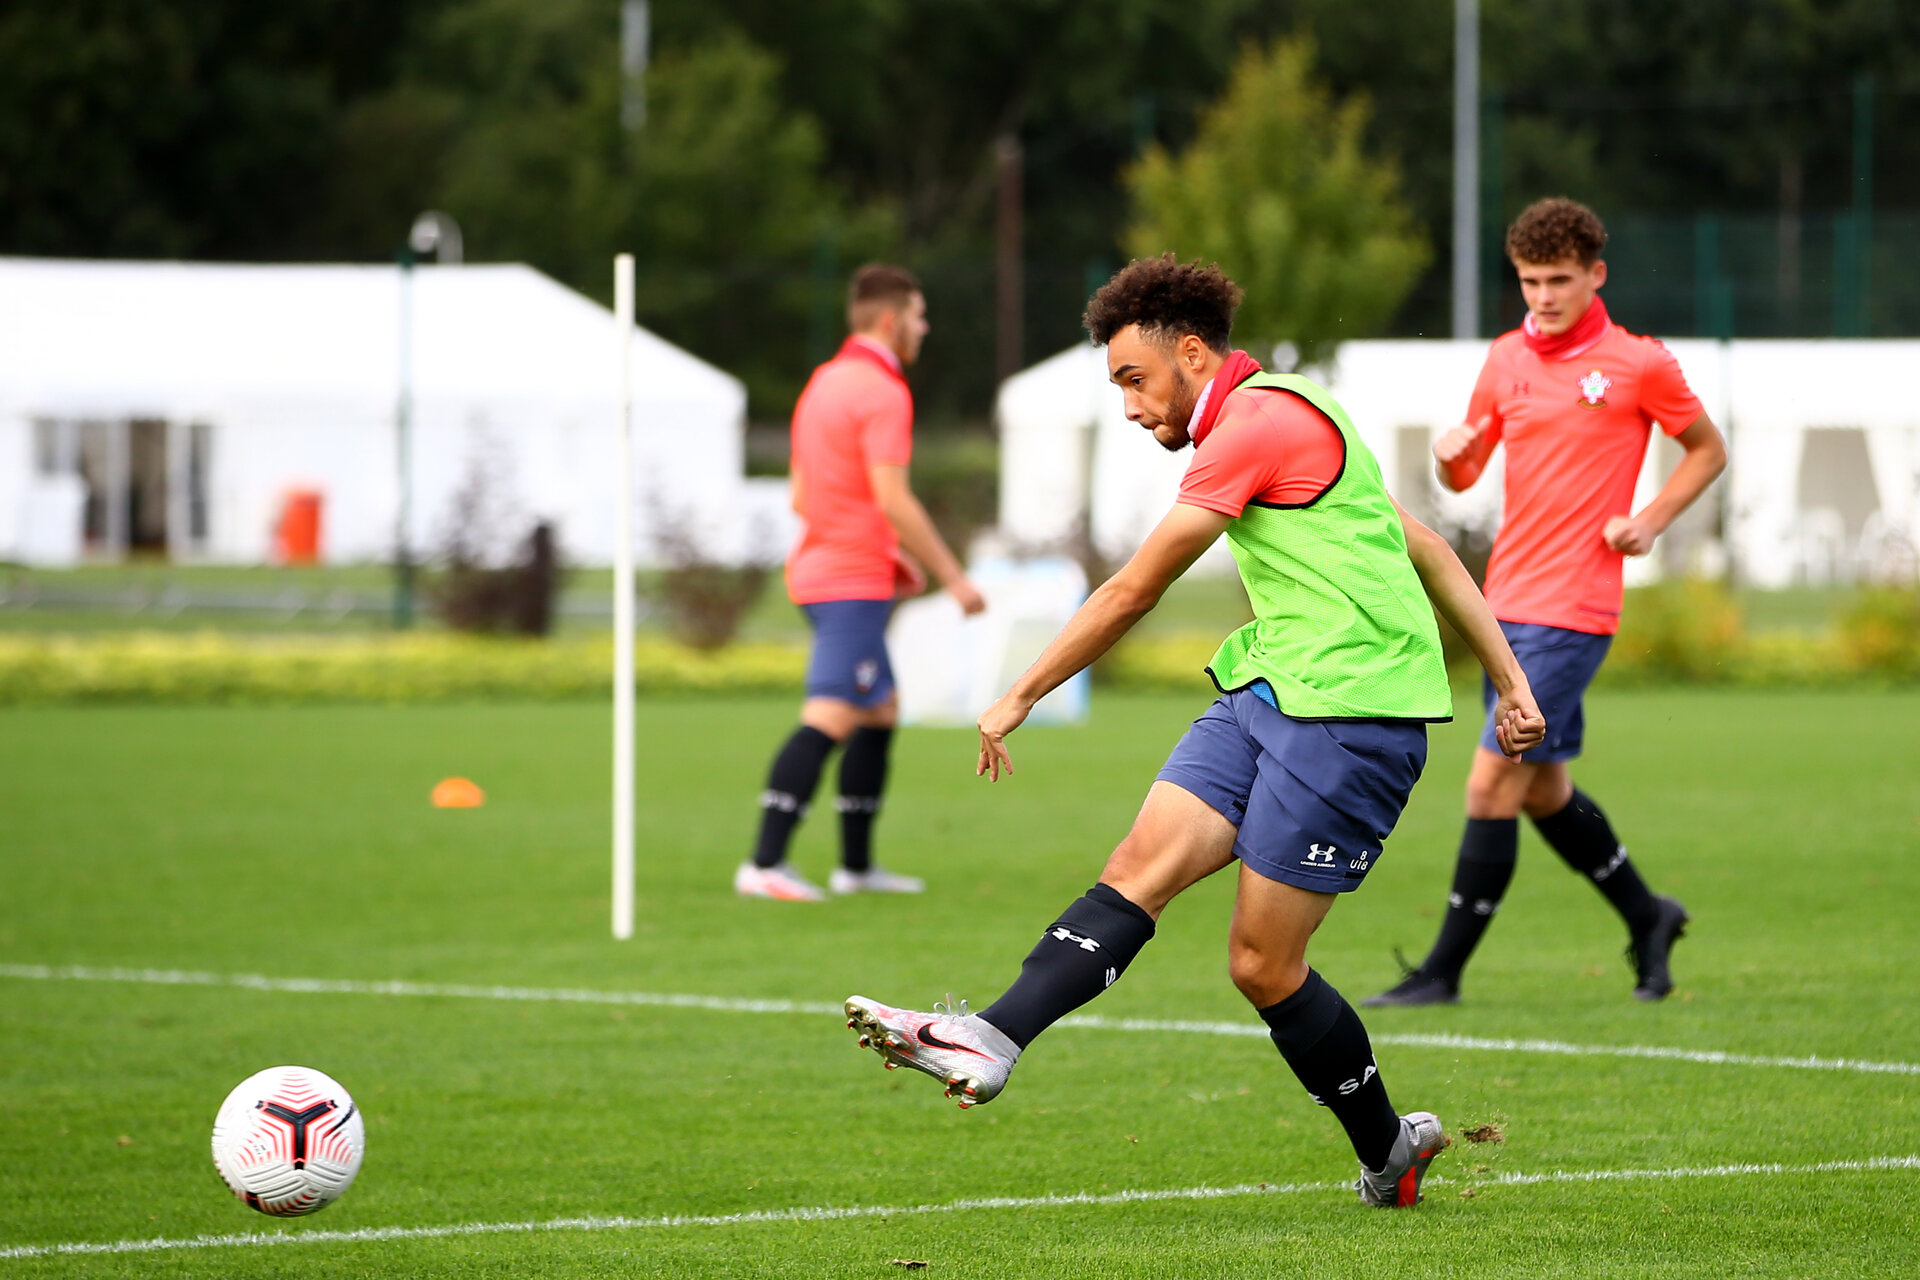 SOUTHAMPTON, ENGLAND - SEPTEMBER 04:  during a Southampton FC U18 training session at the Staplewood Campus on September 04, 2020 in Southampton, England. (Photo by Isabelle Field/Southampton FC)